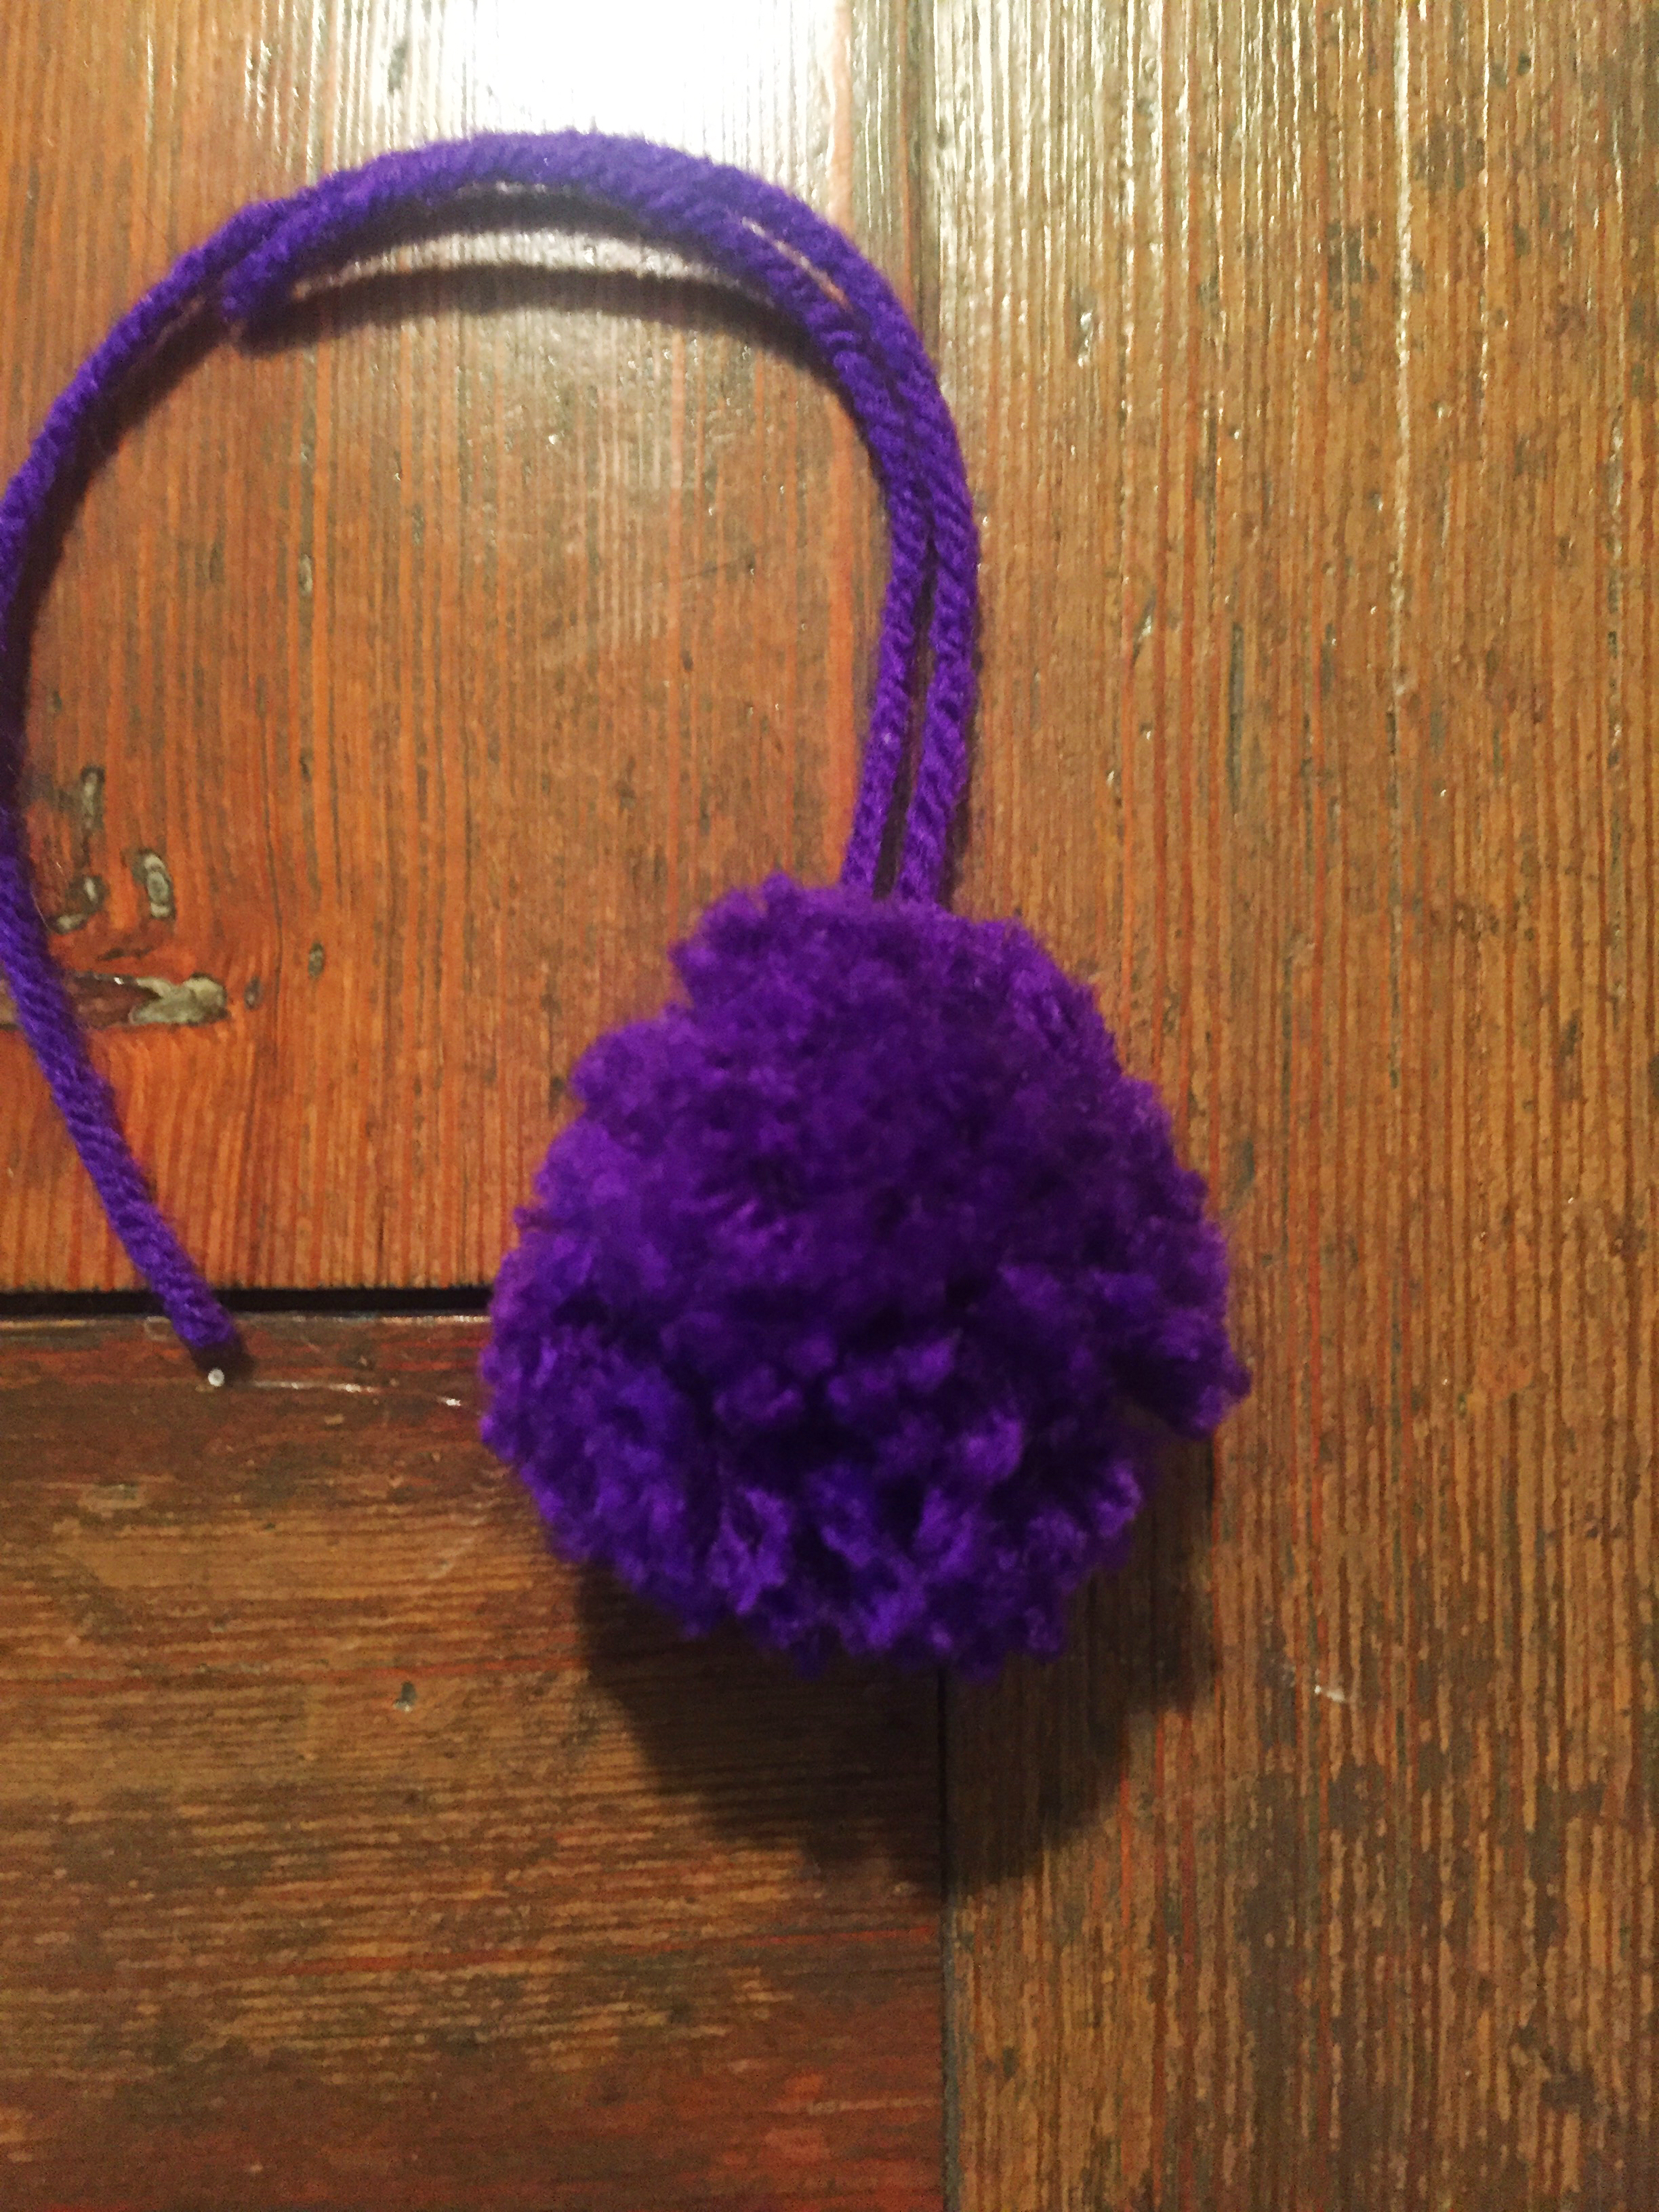 The not-the-worst-or-the-best pom pom.